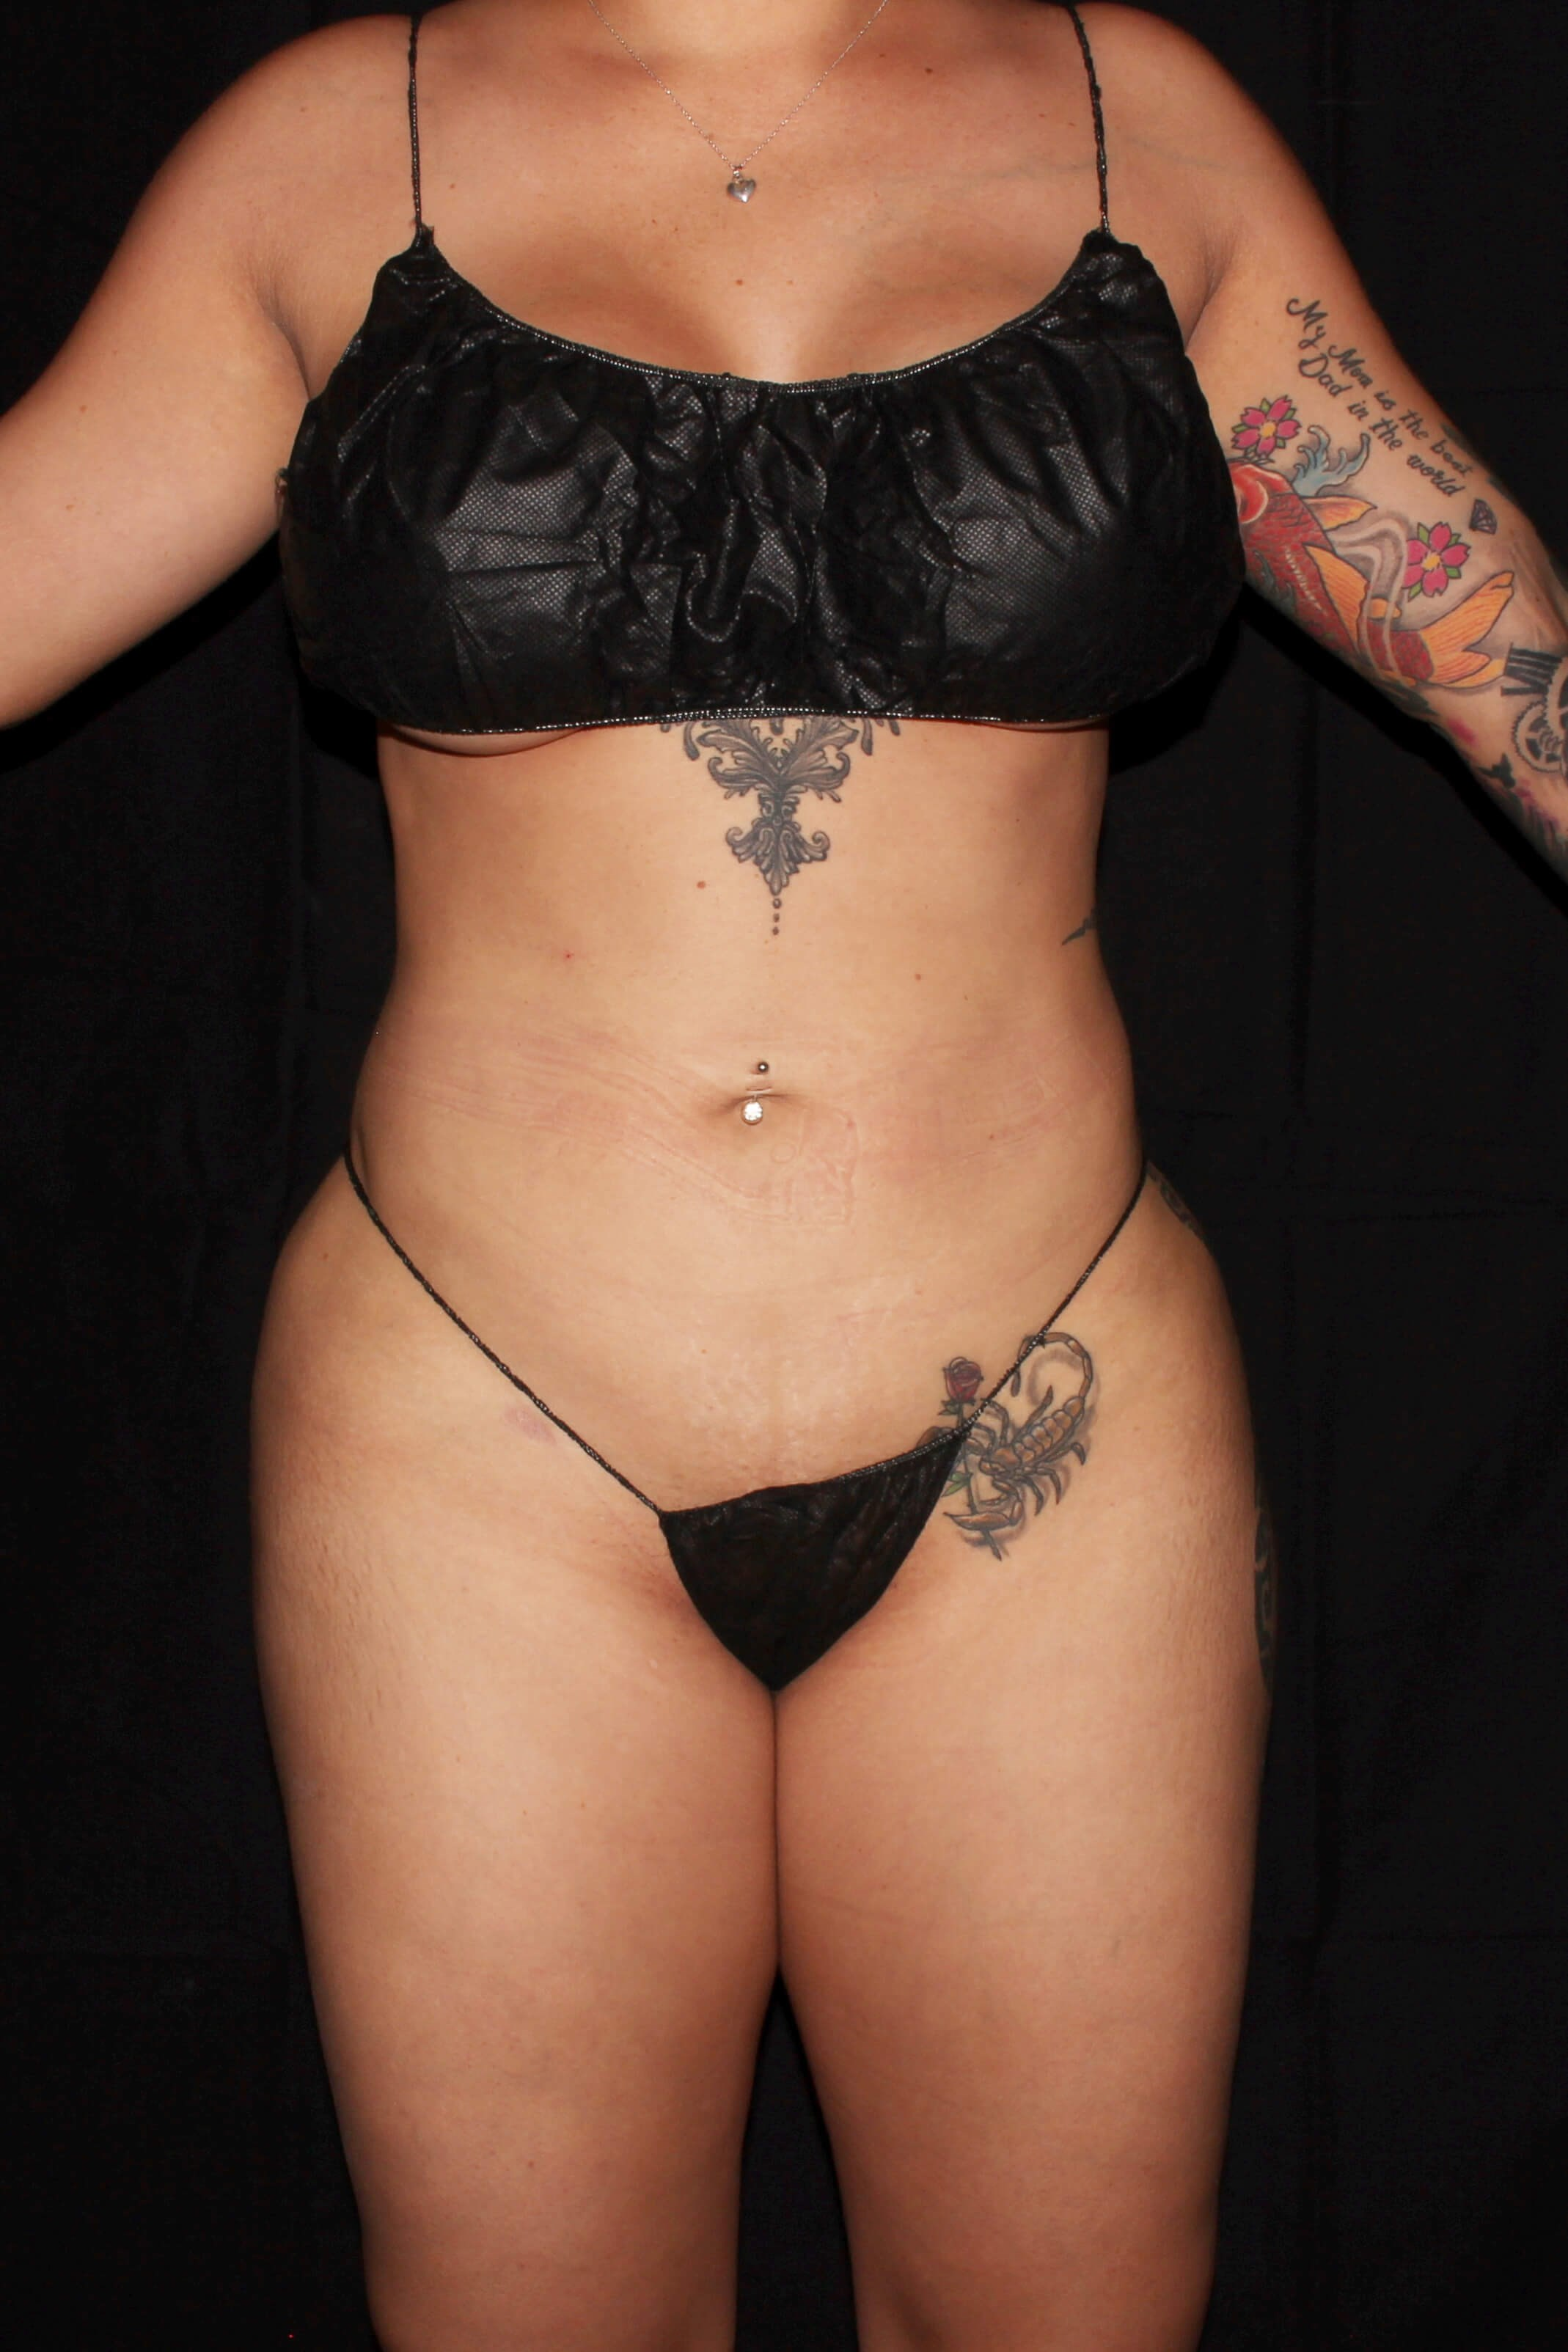 After Liposuction - Full Torso Lipo, BBL